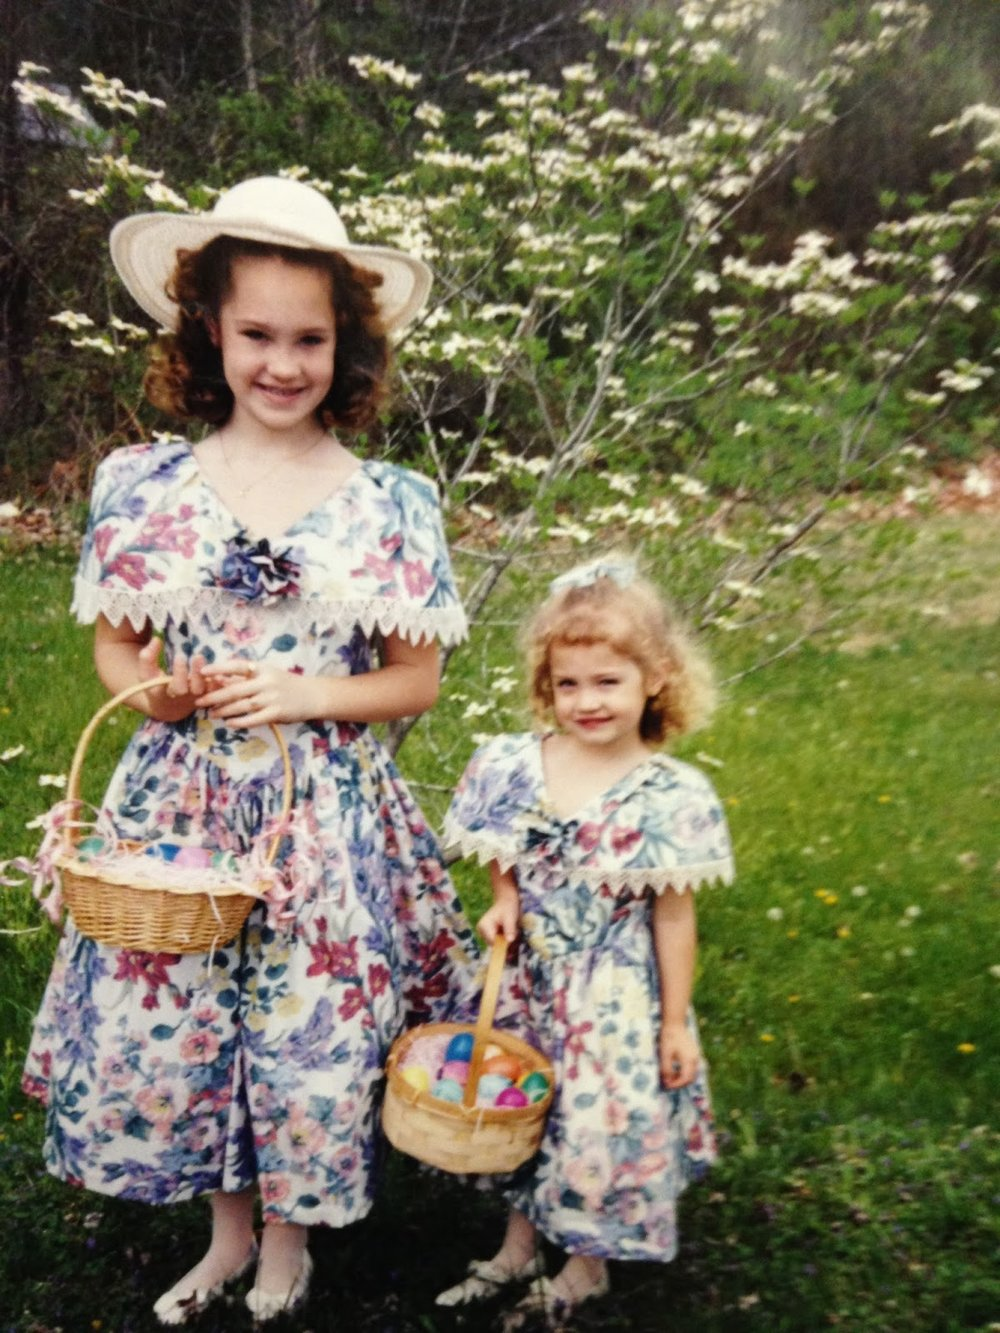 Emily and her younger sister in their Easter frocks.